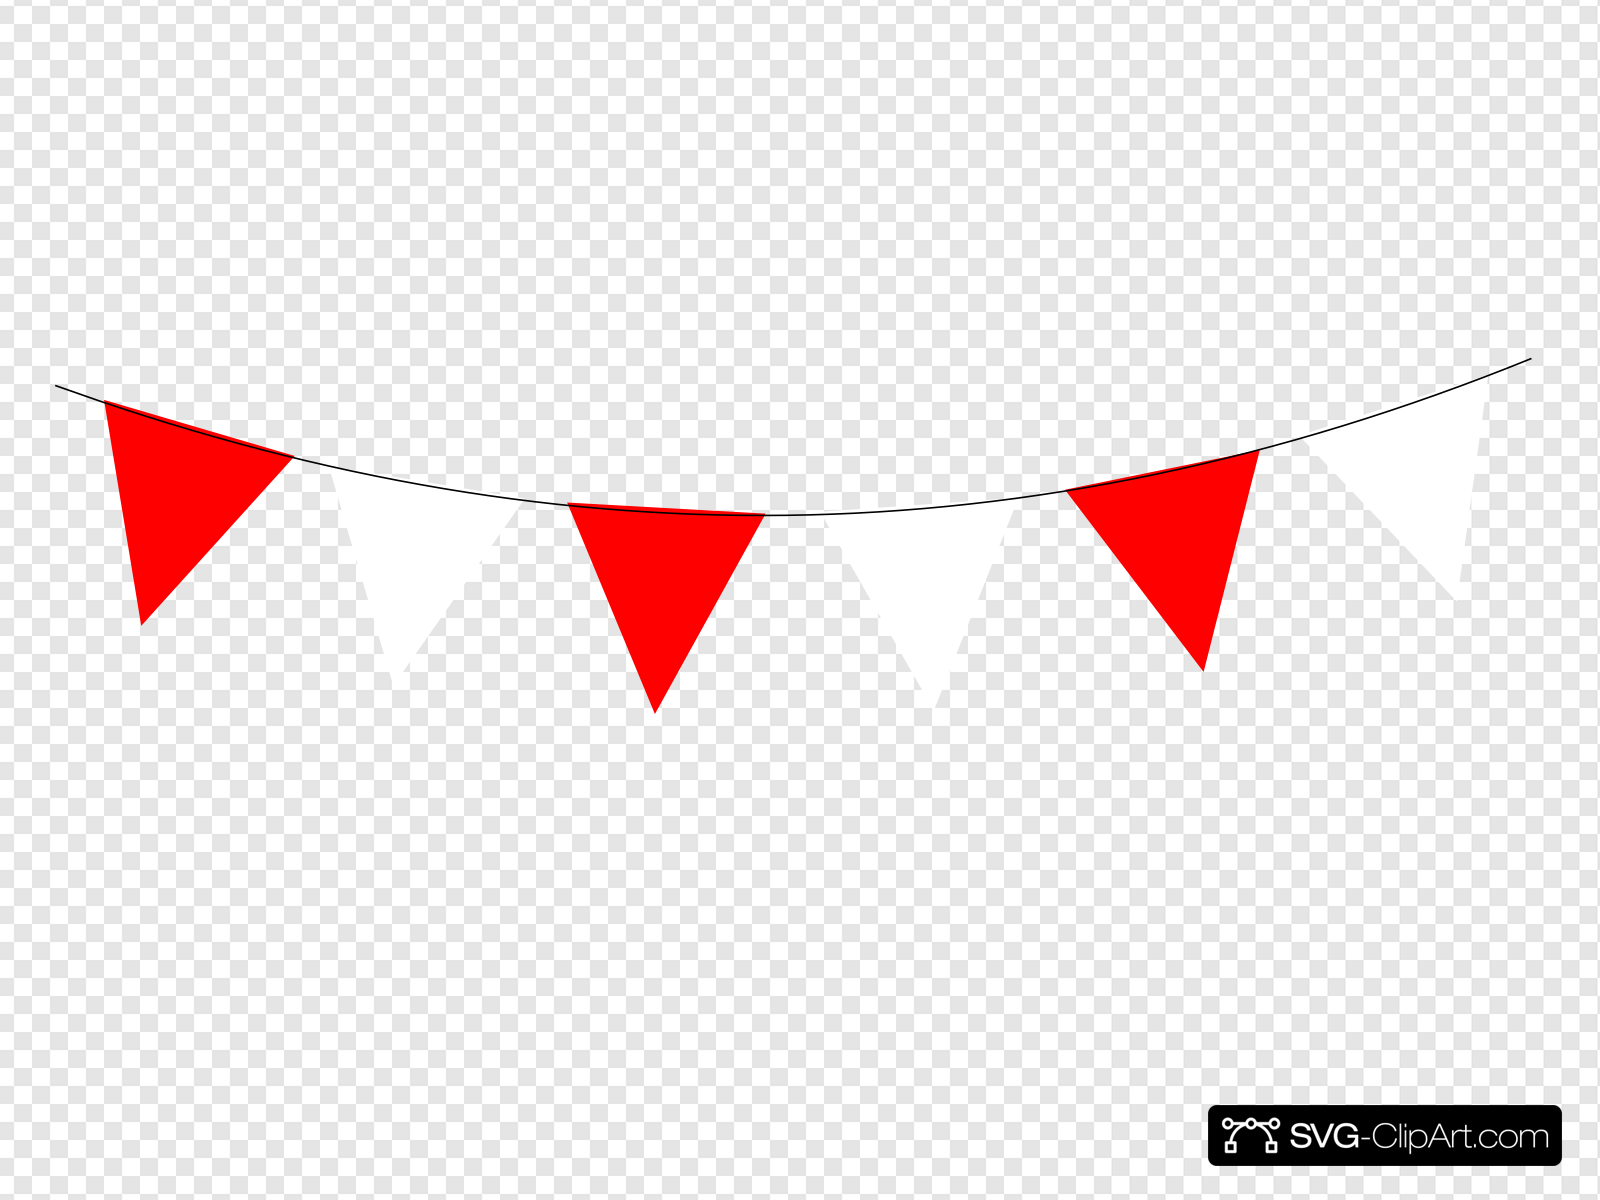 Red and white clipart vector black and white library Red And White Bunting Clip art, Icon and SVG - SVG Clipart vector black and white library